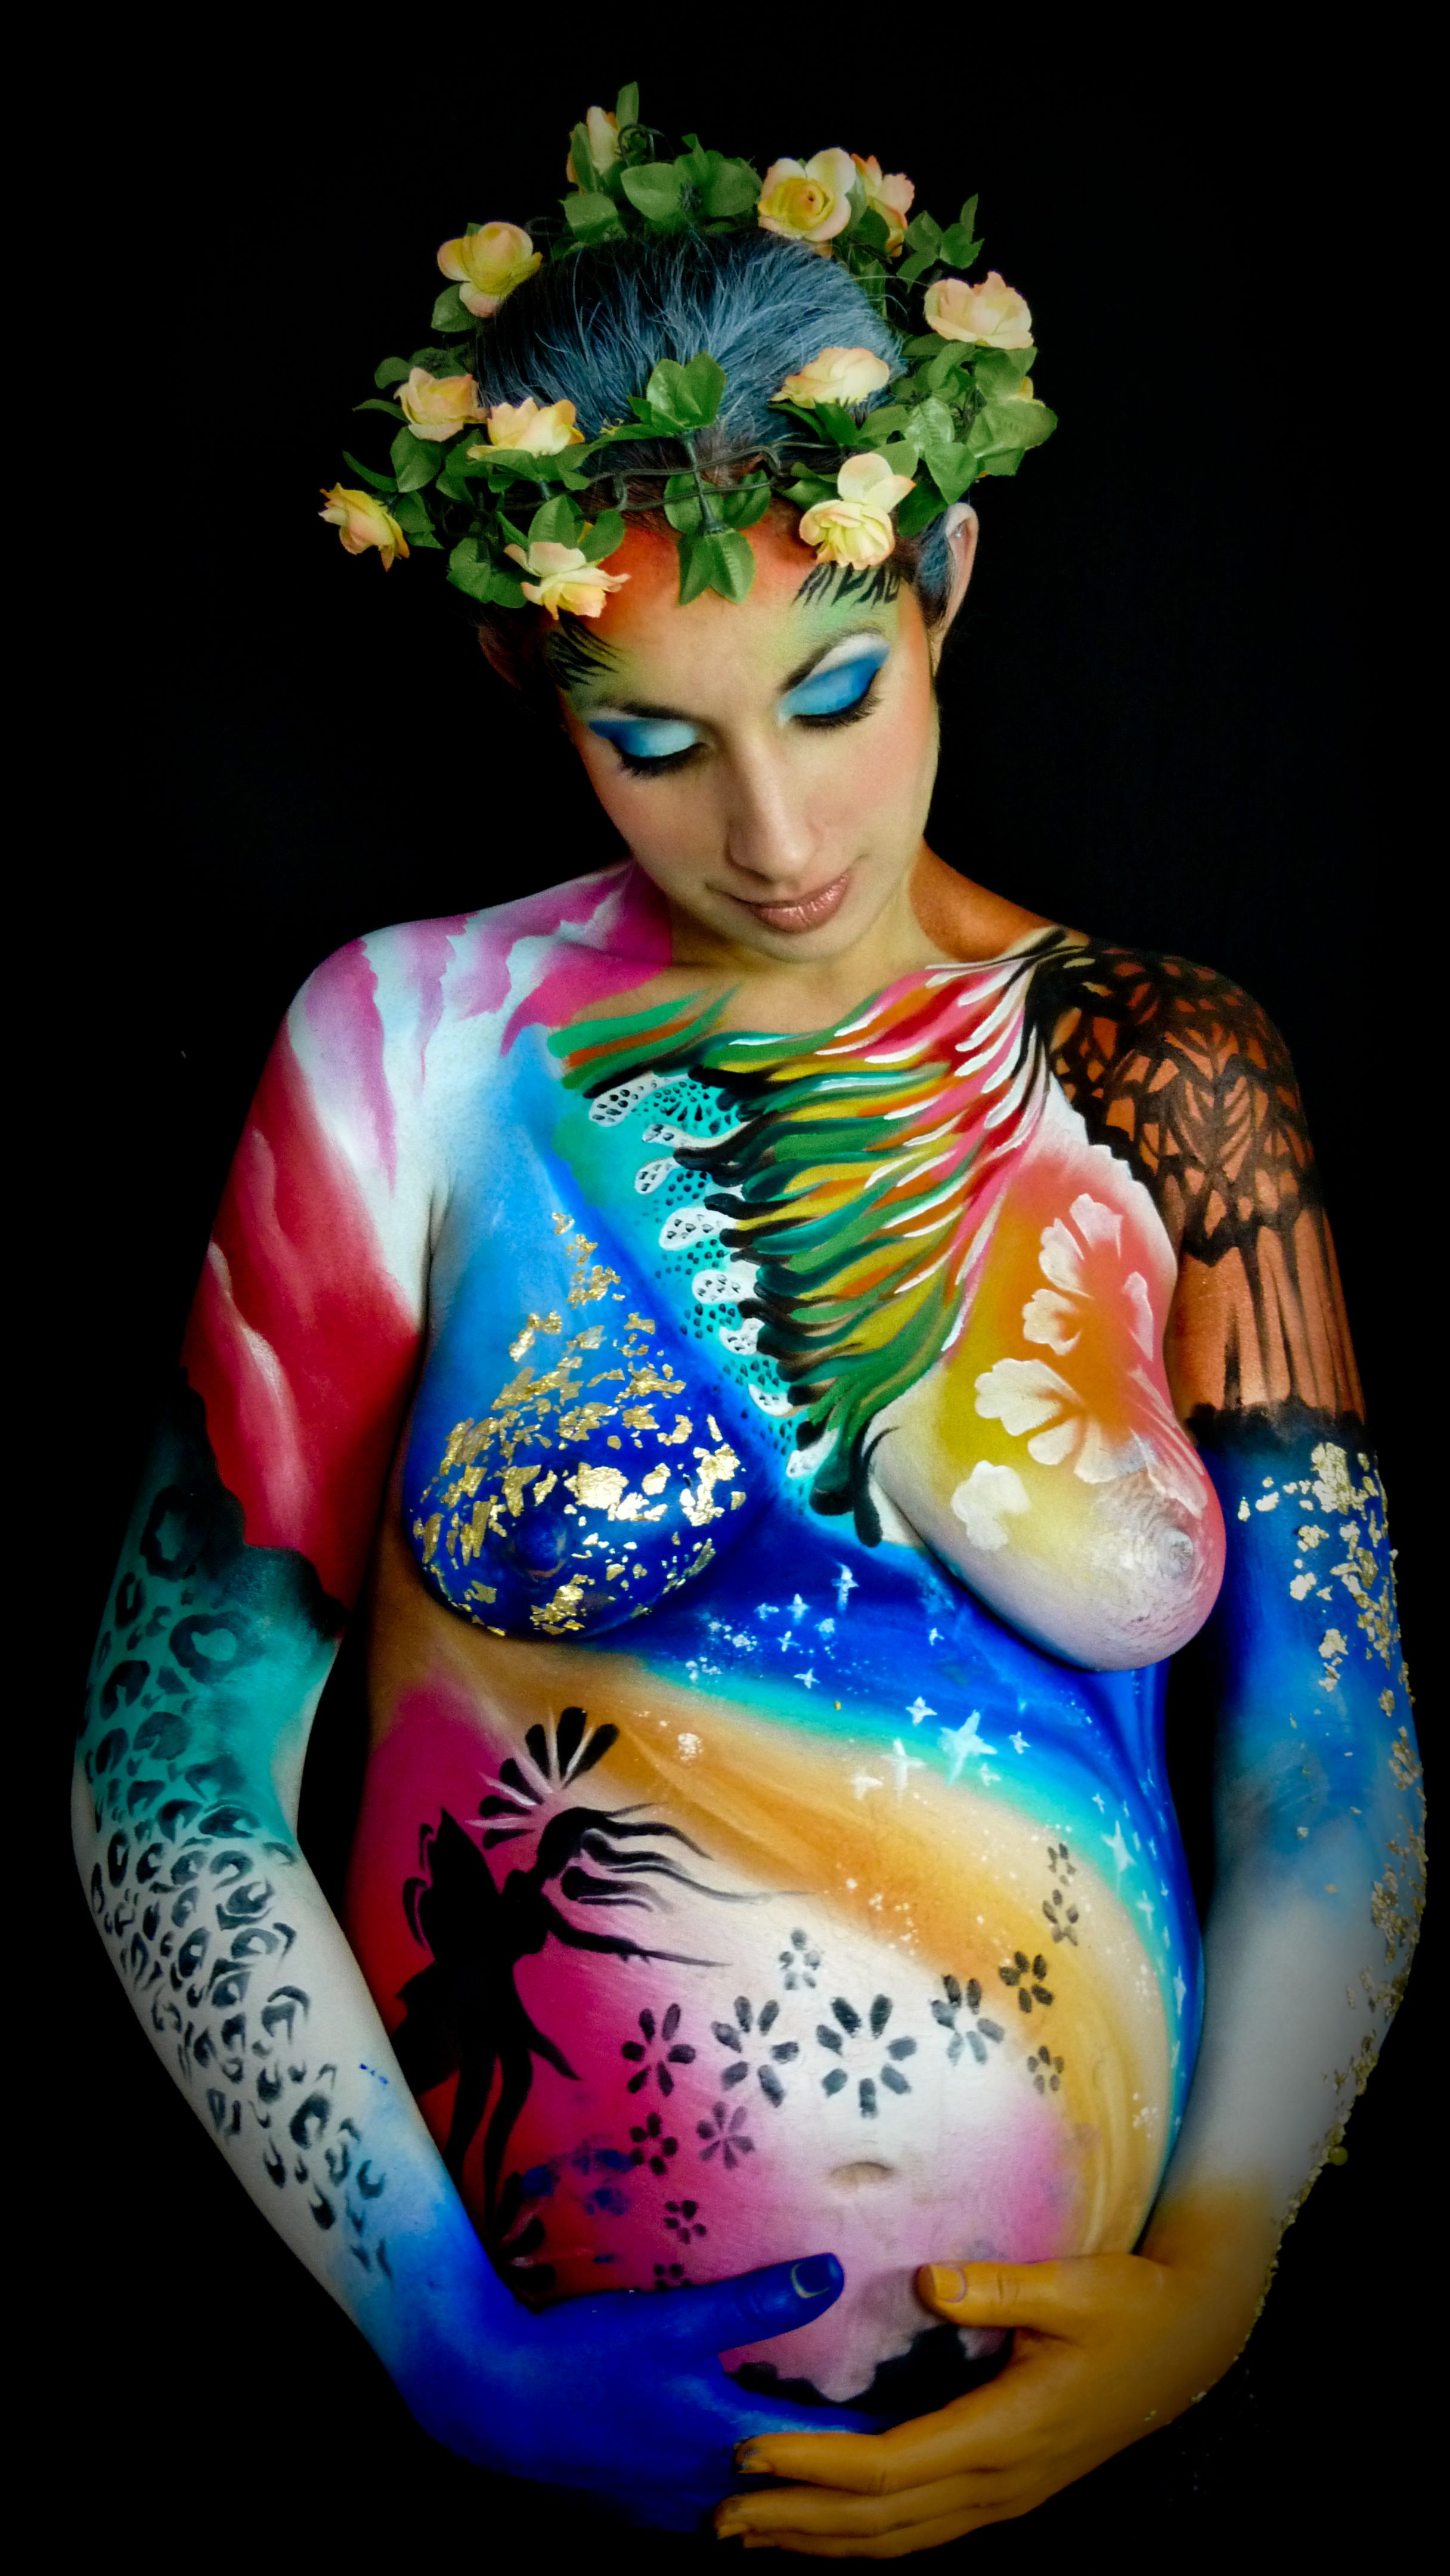 body painting body painting femme enceinte manon cormier body art pinterest body paint. Black Bedroom Furniture Sets. Home Design Ideas